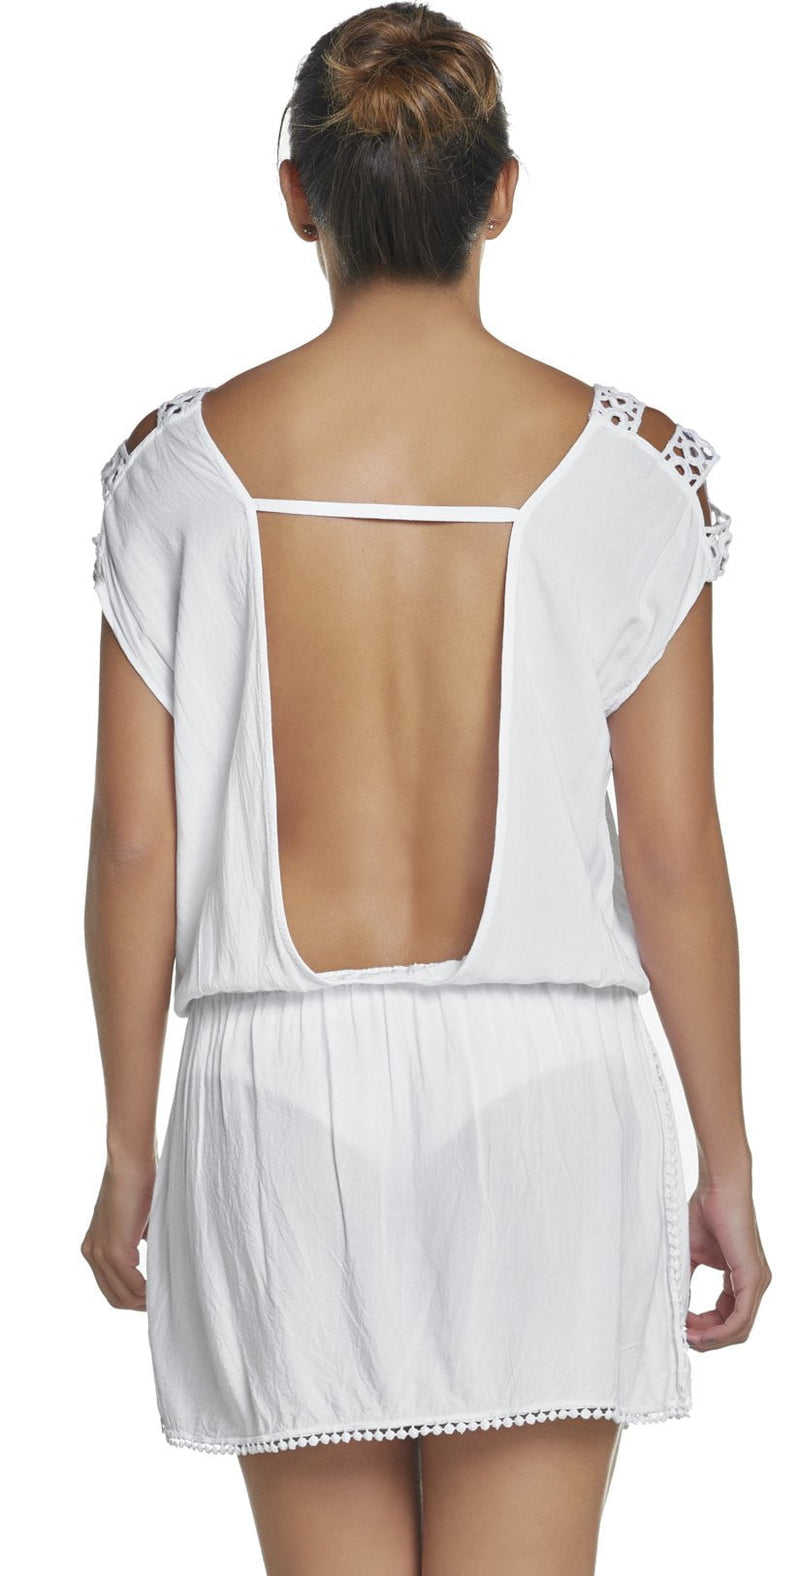 PilyQ Water Lily Camila Cover-Up in White WAT-952T: